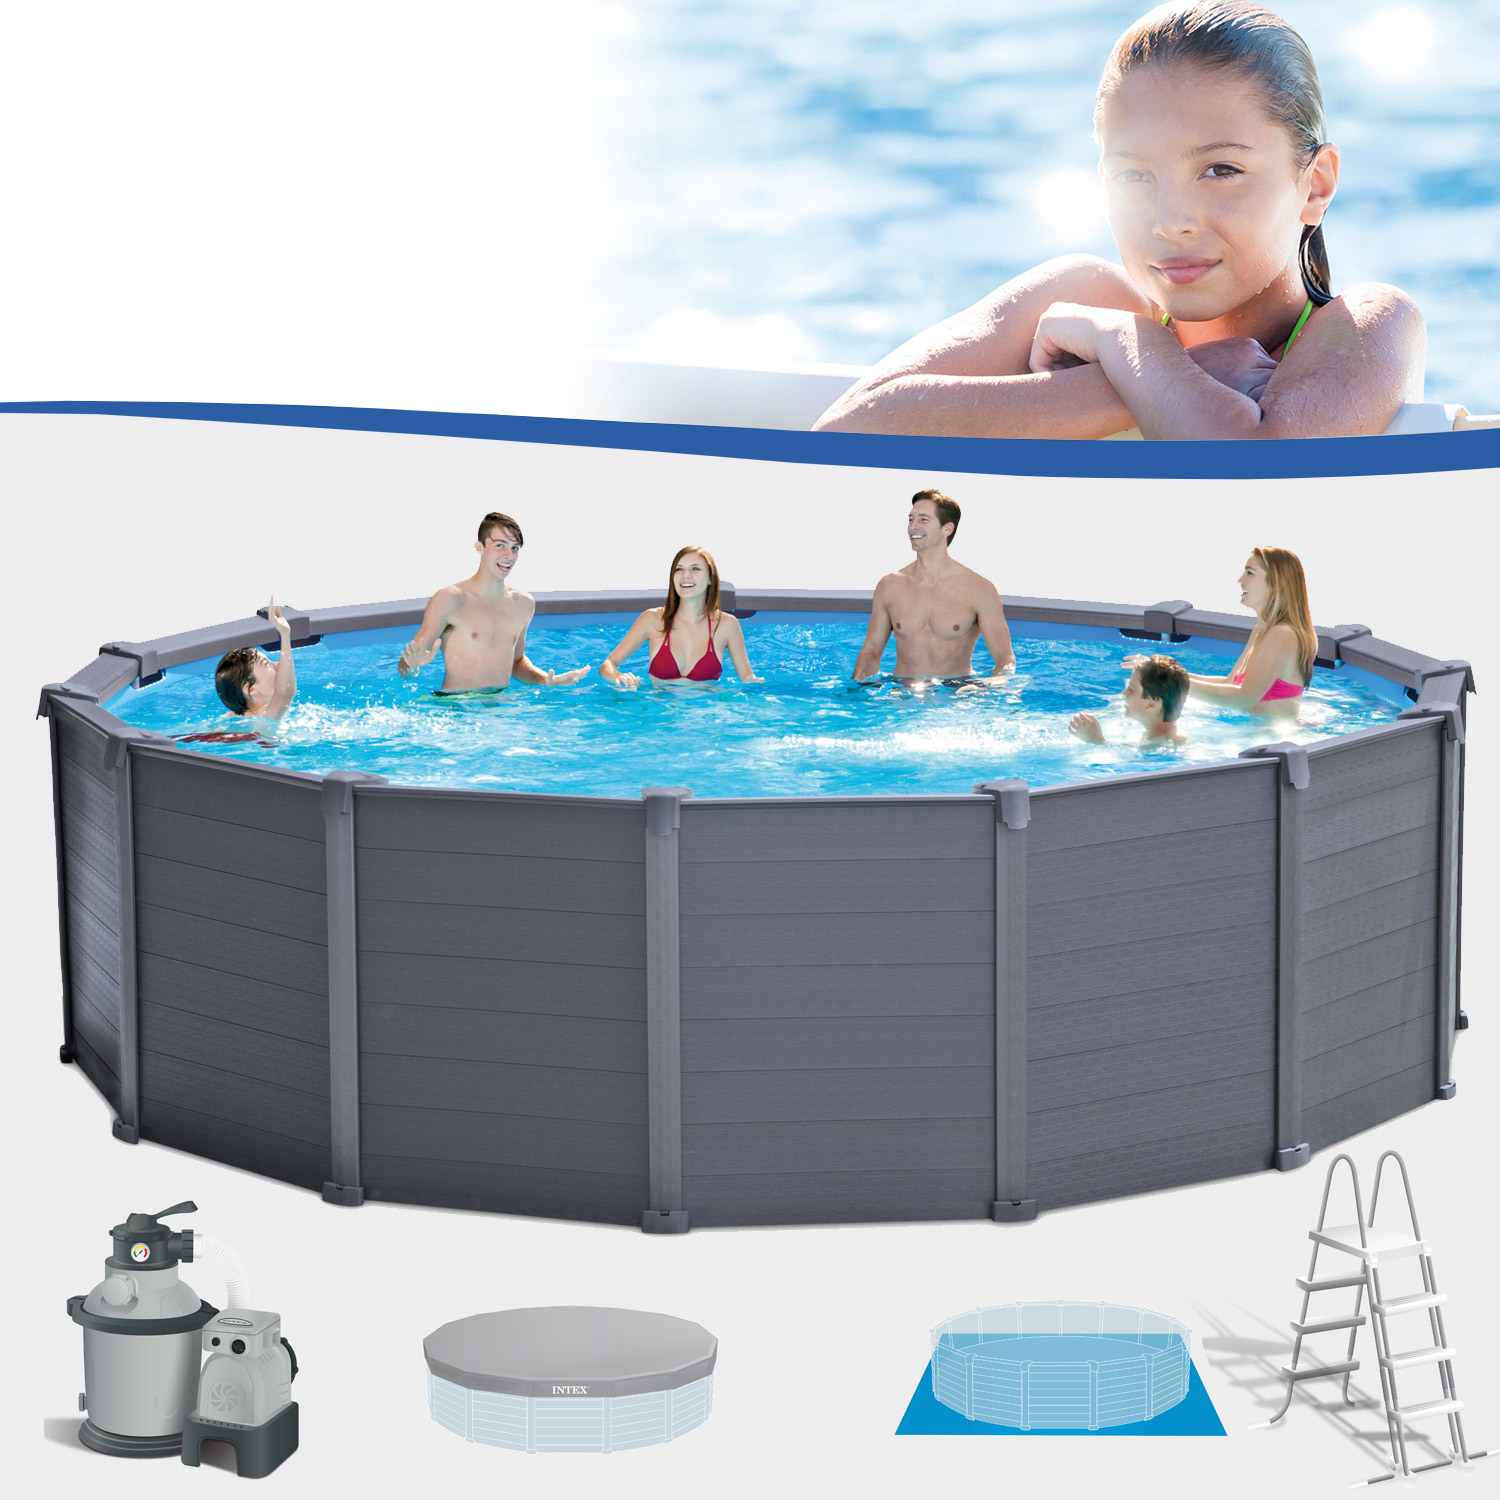 intex 478x124 frame swimming pool schwimmbecken schwimmbad mit sandfilter pumpe. Black Bedroom Furniture Sets. Home Design Ideas